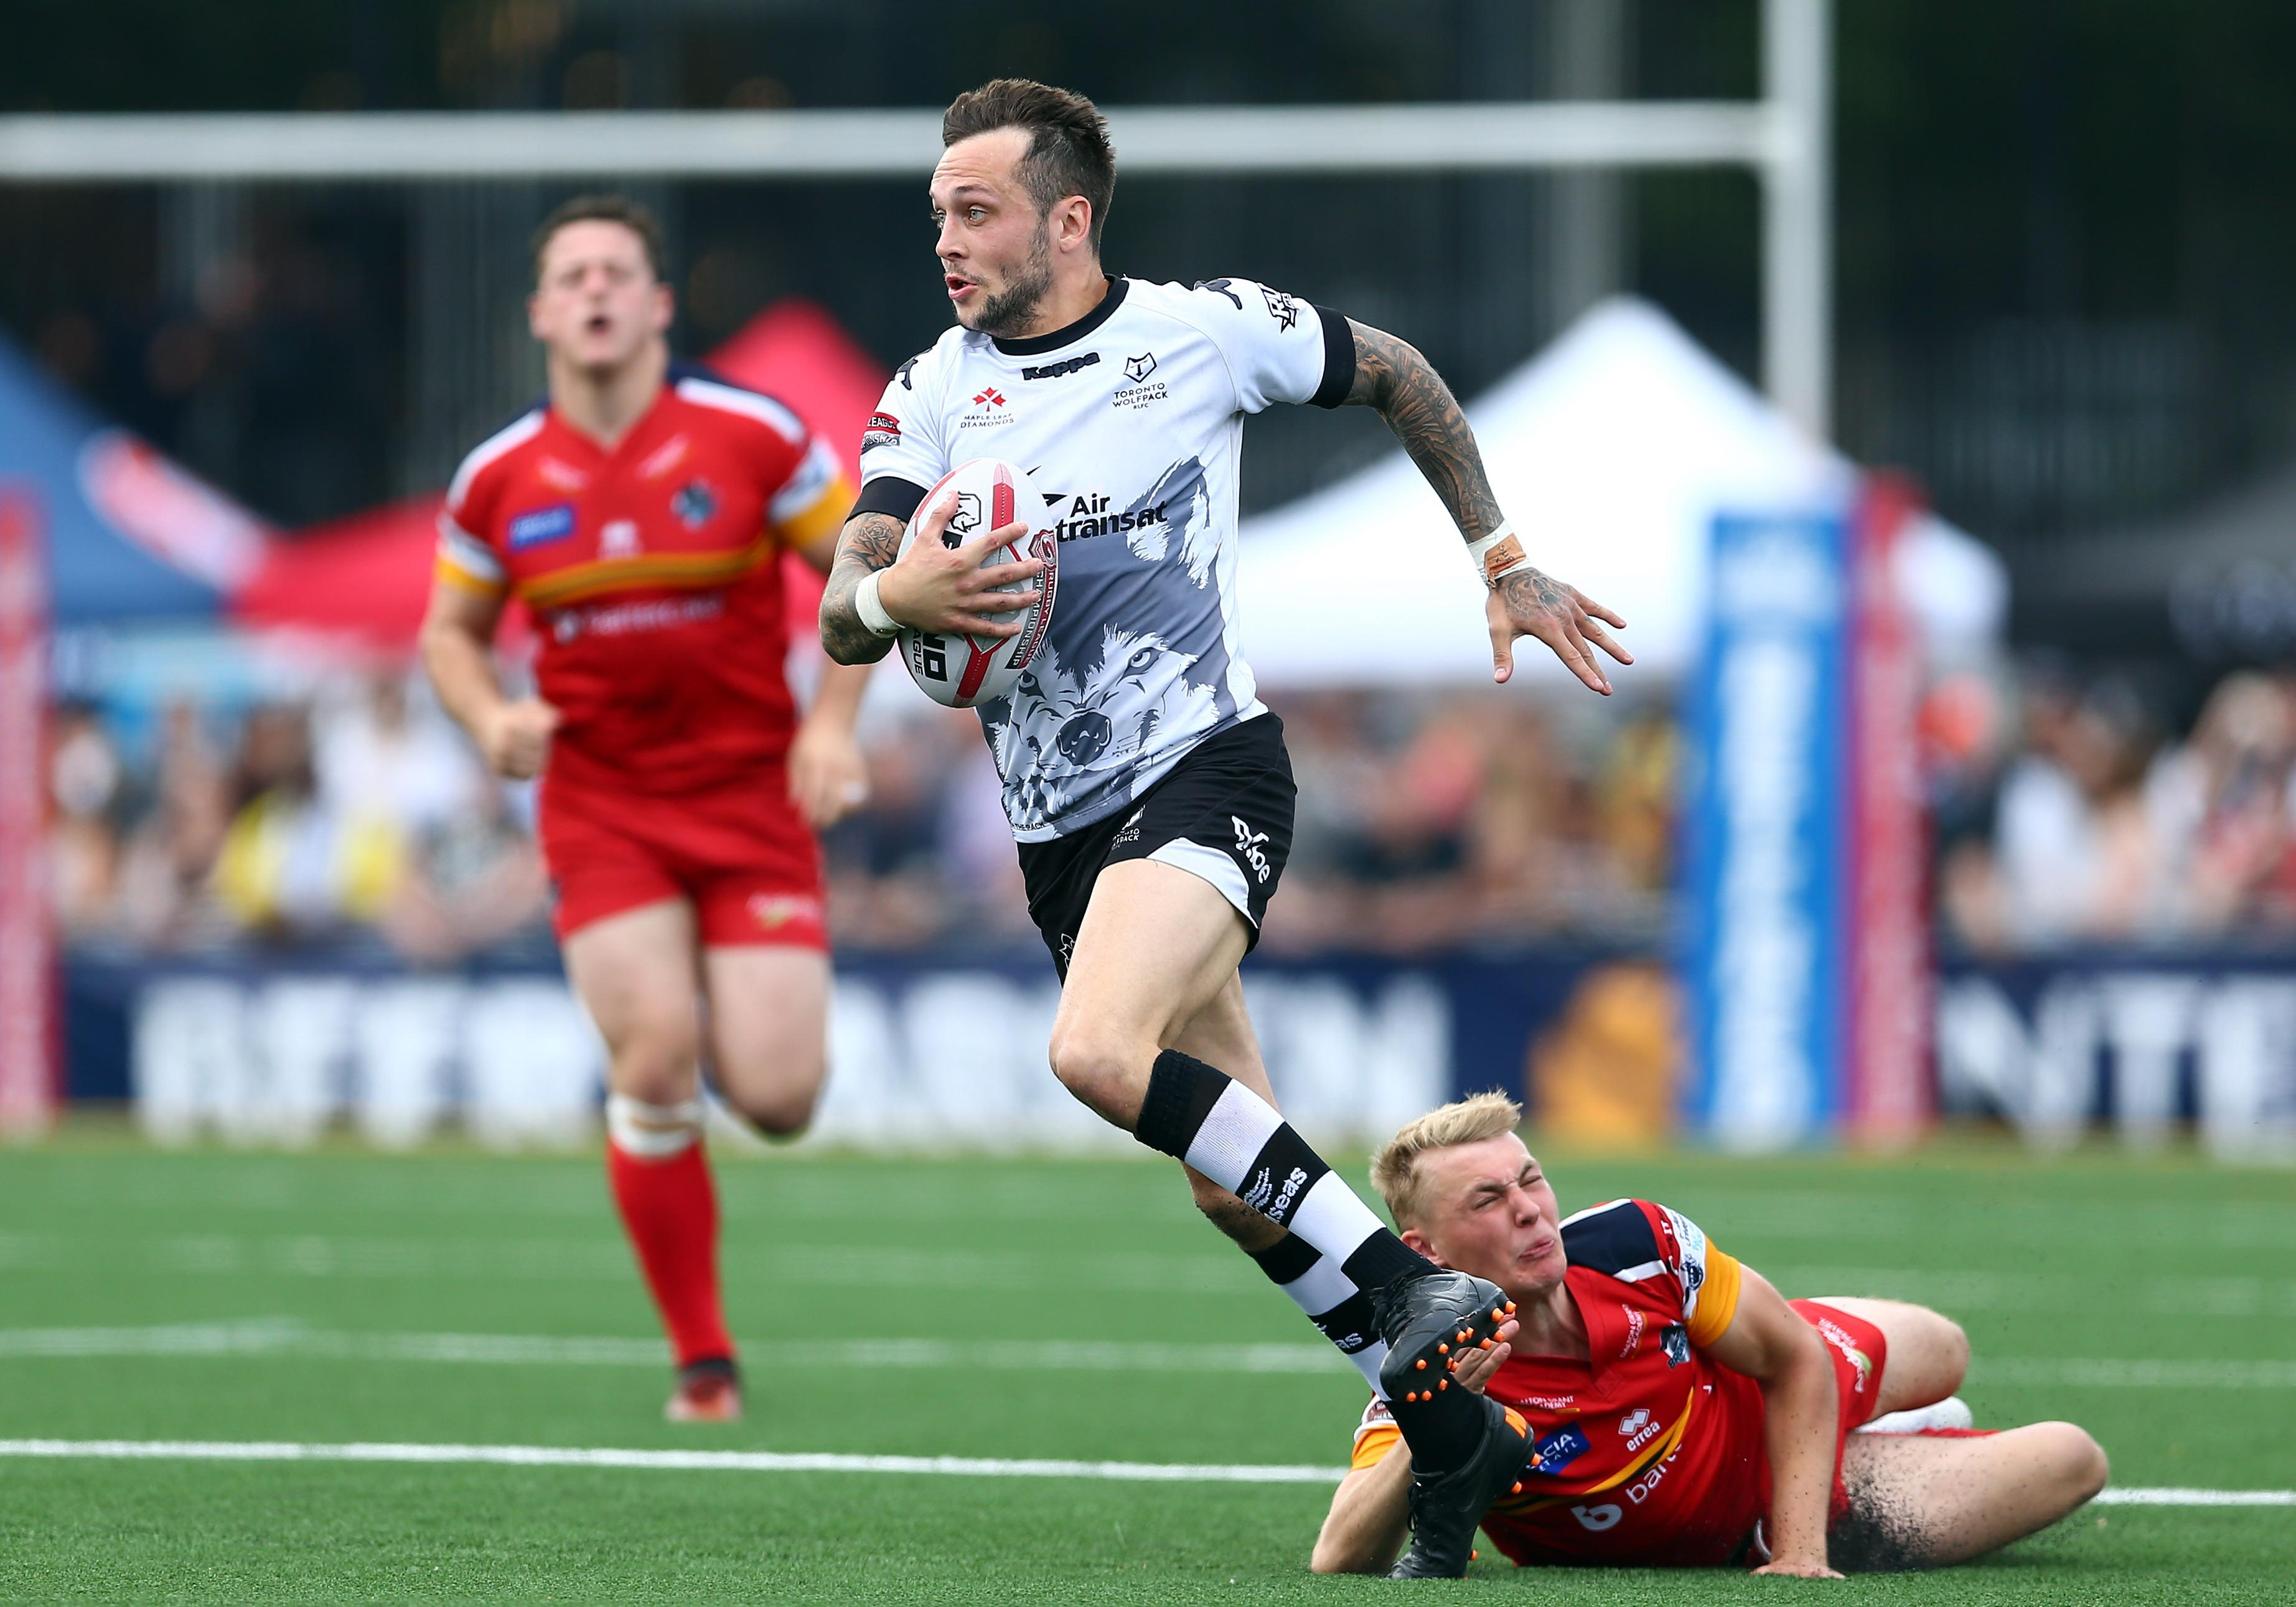 Toronto and London Broncos face off for a place in the top flight